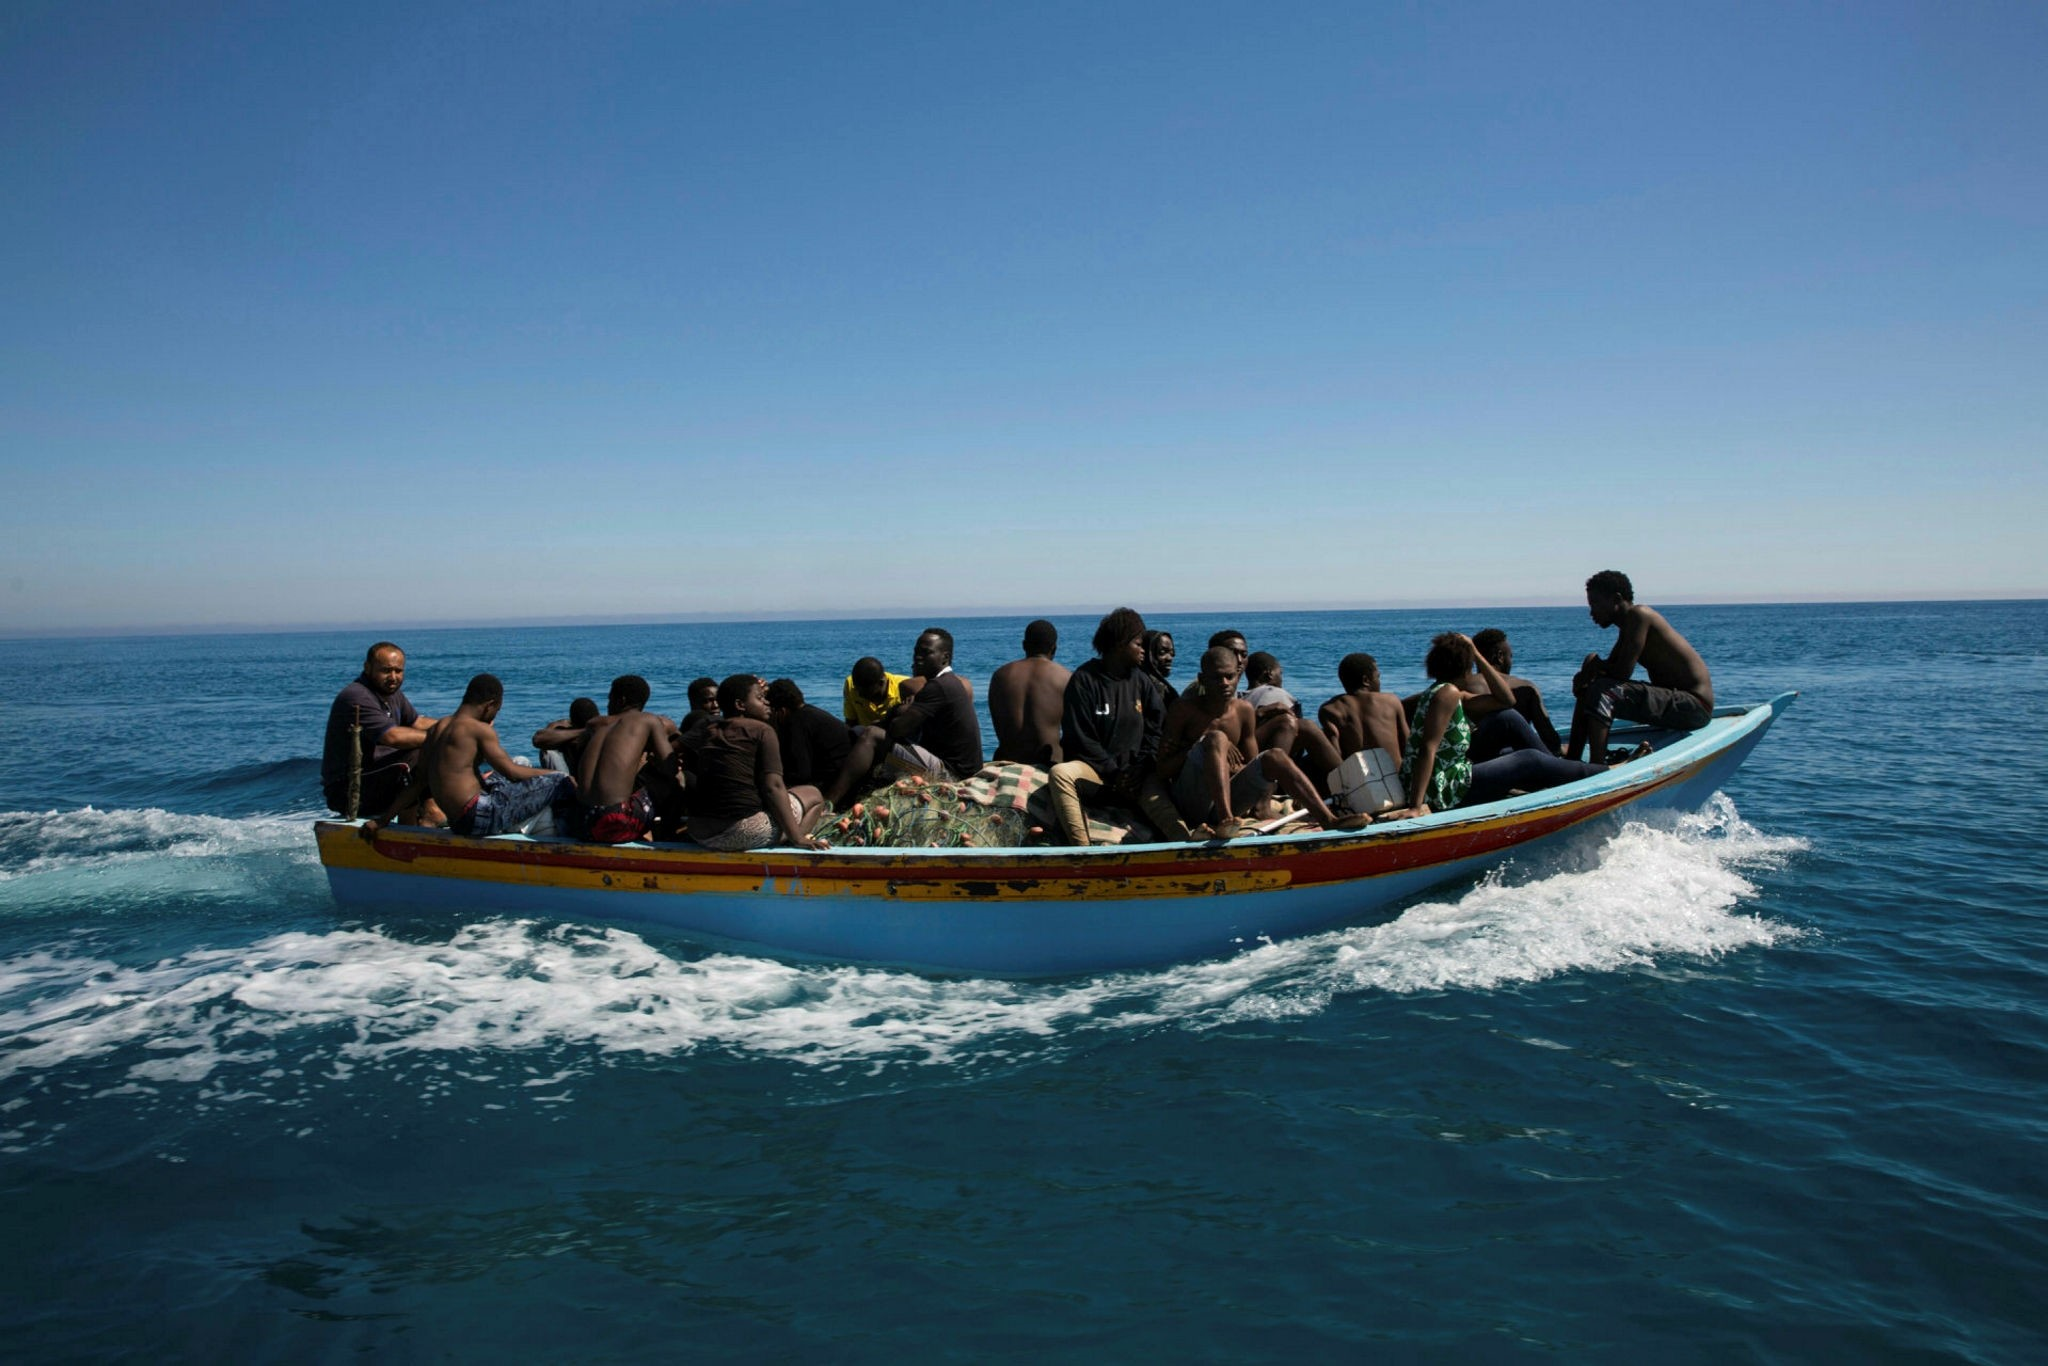 Migrants on a boat after they were rescued by the Libyan coastguard in the Mediterranean off the Libyan coast, July 8.